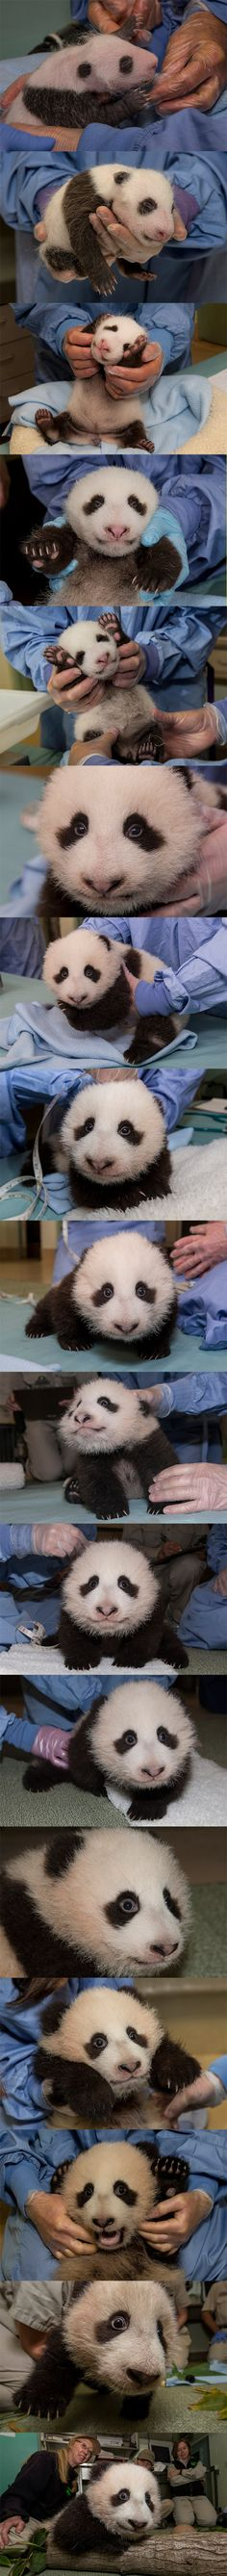 Panda cub Xiao Liwu's growth from exams 1-17. Too cute not to re-pin!